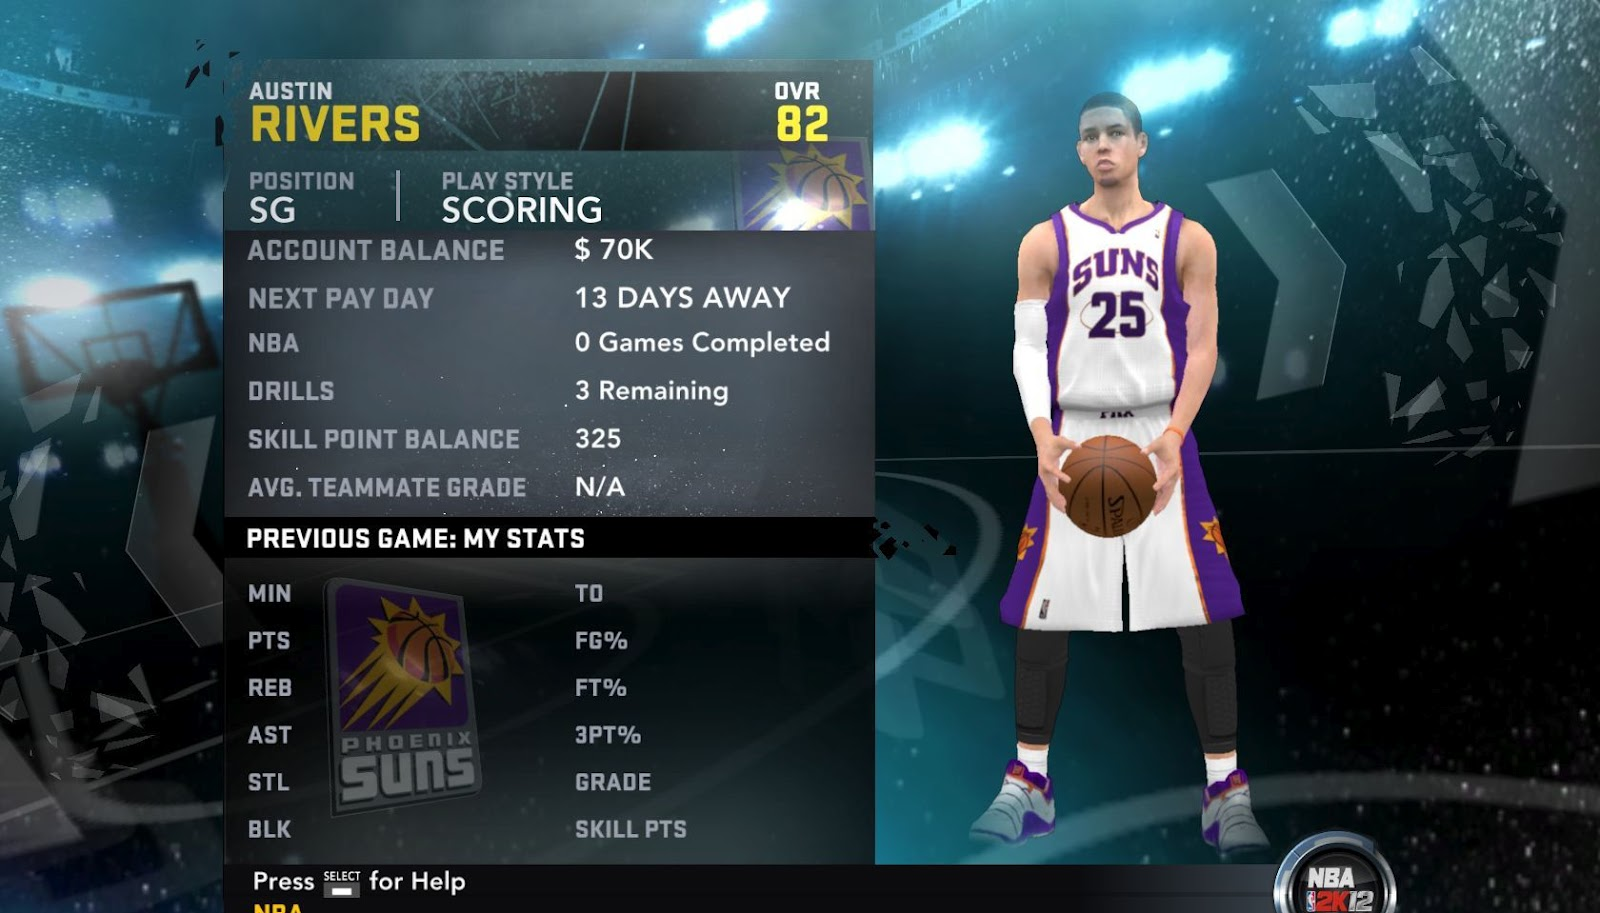 NBA 2K12 Trainer  Cheats  Codes  Walkthroughs  Guides  FAQs And More